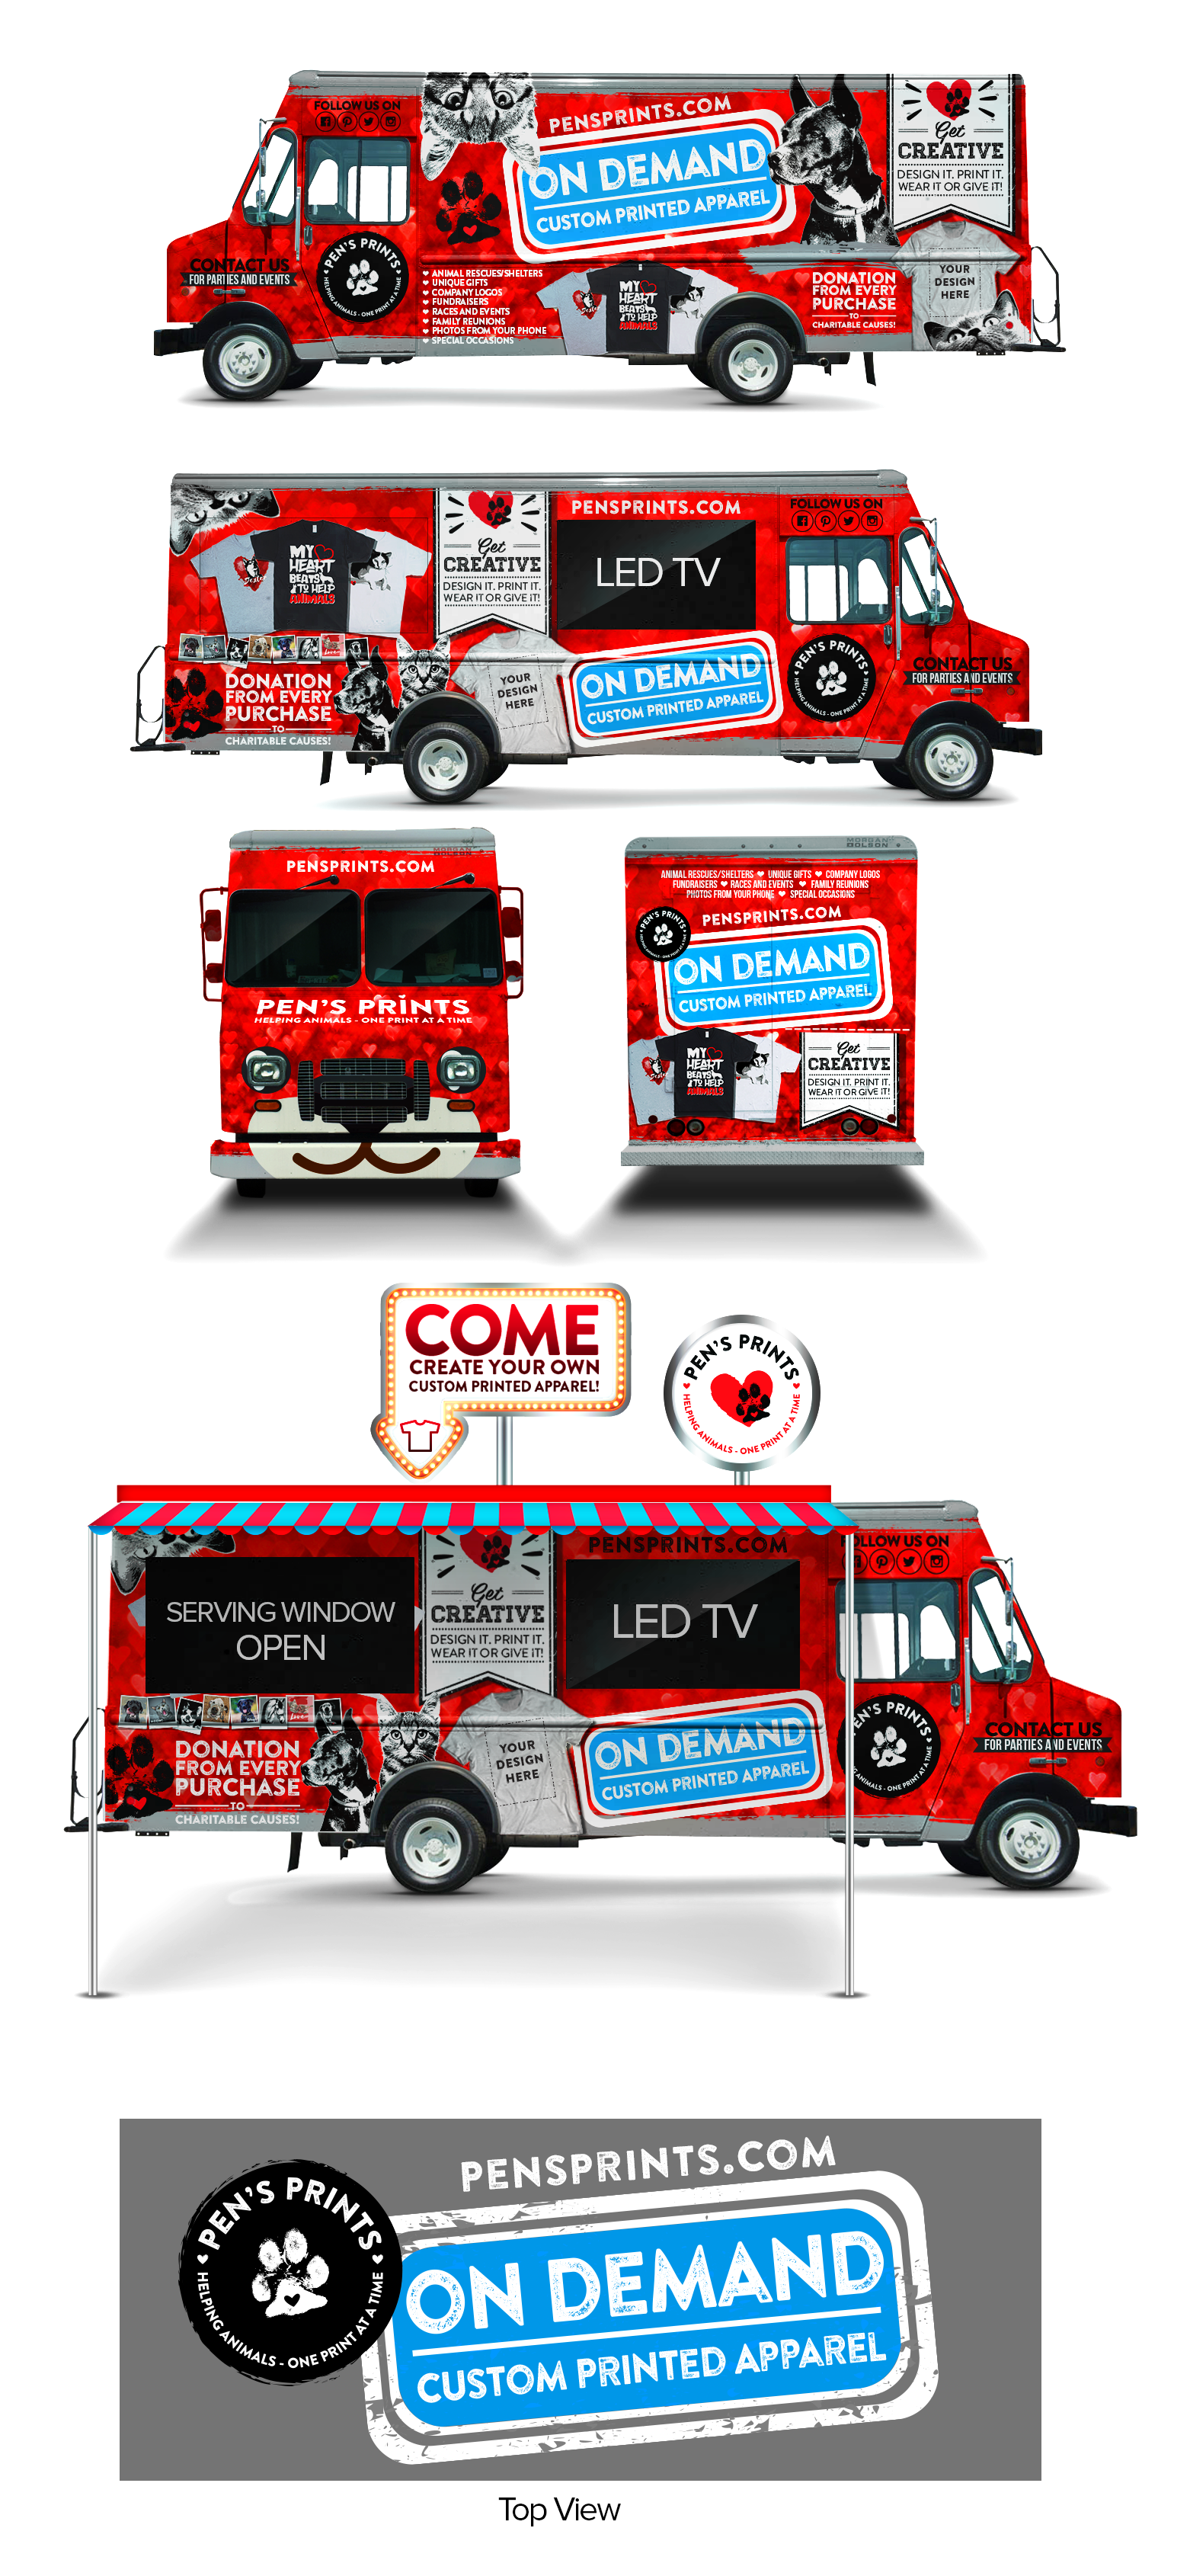 Create a Vehicle Wrap for an On Demand T-Shirt Printing Step Van!